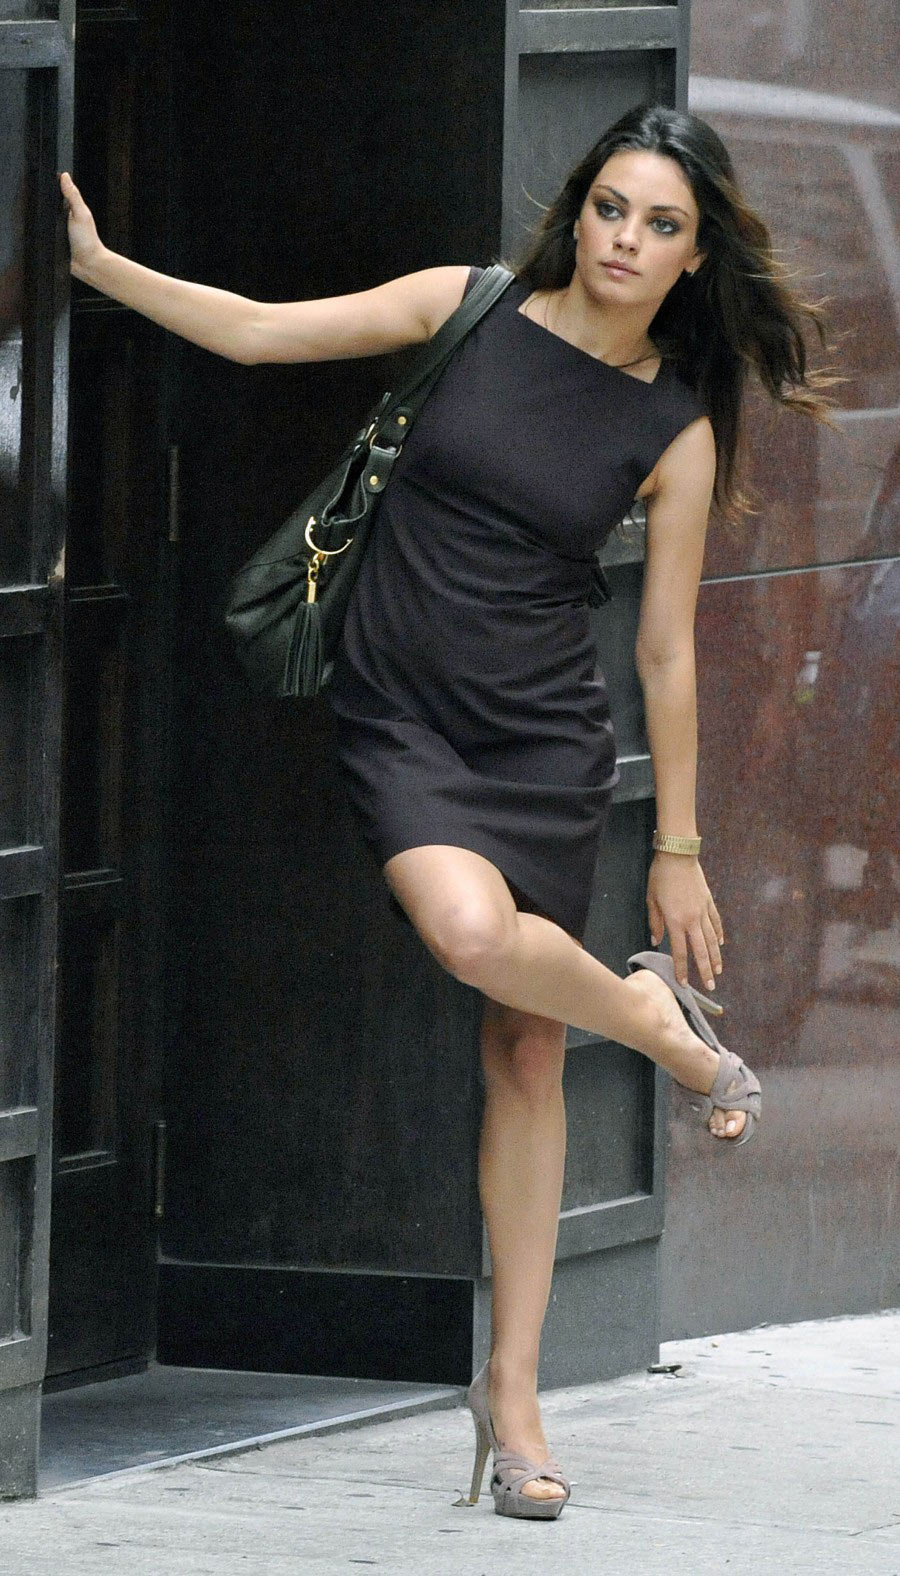 Free Images Pistures Mila Kunis On The Set Candid Pictures